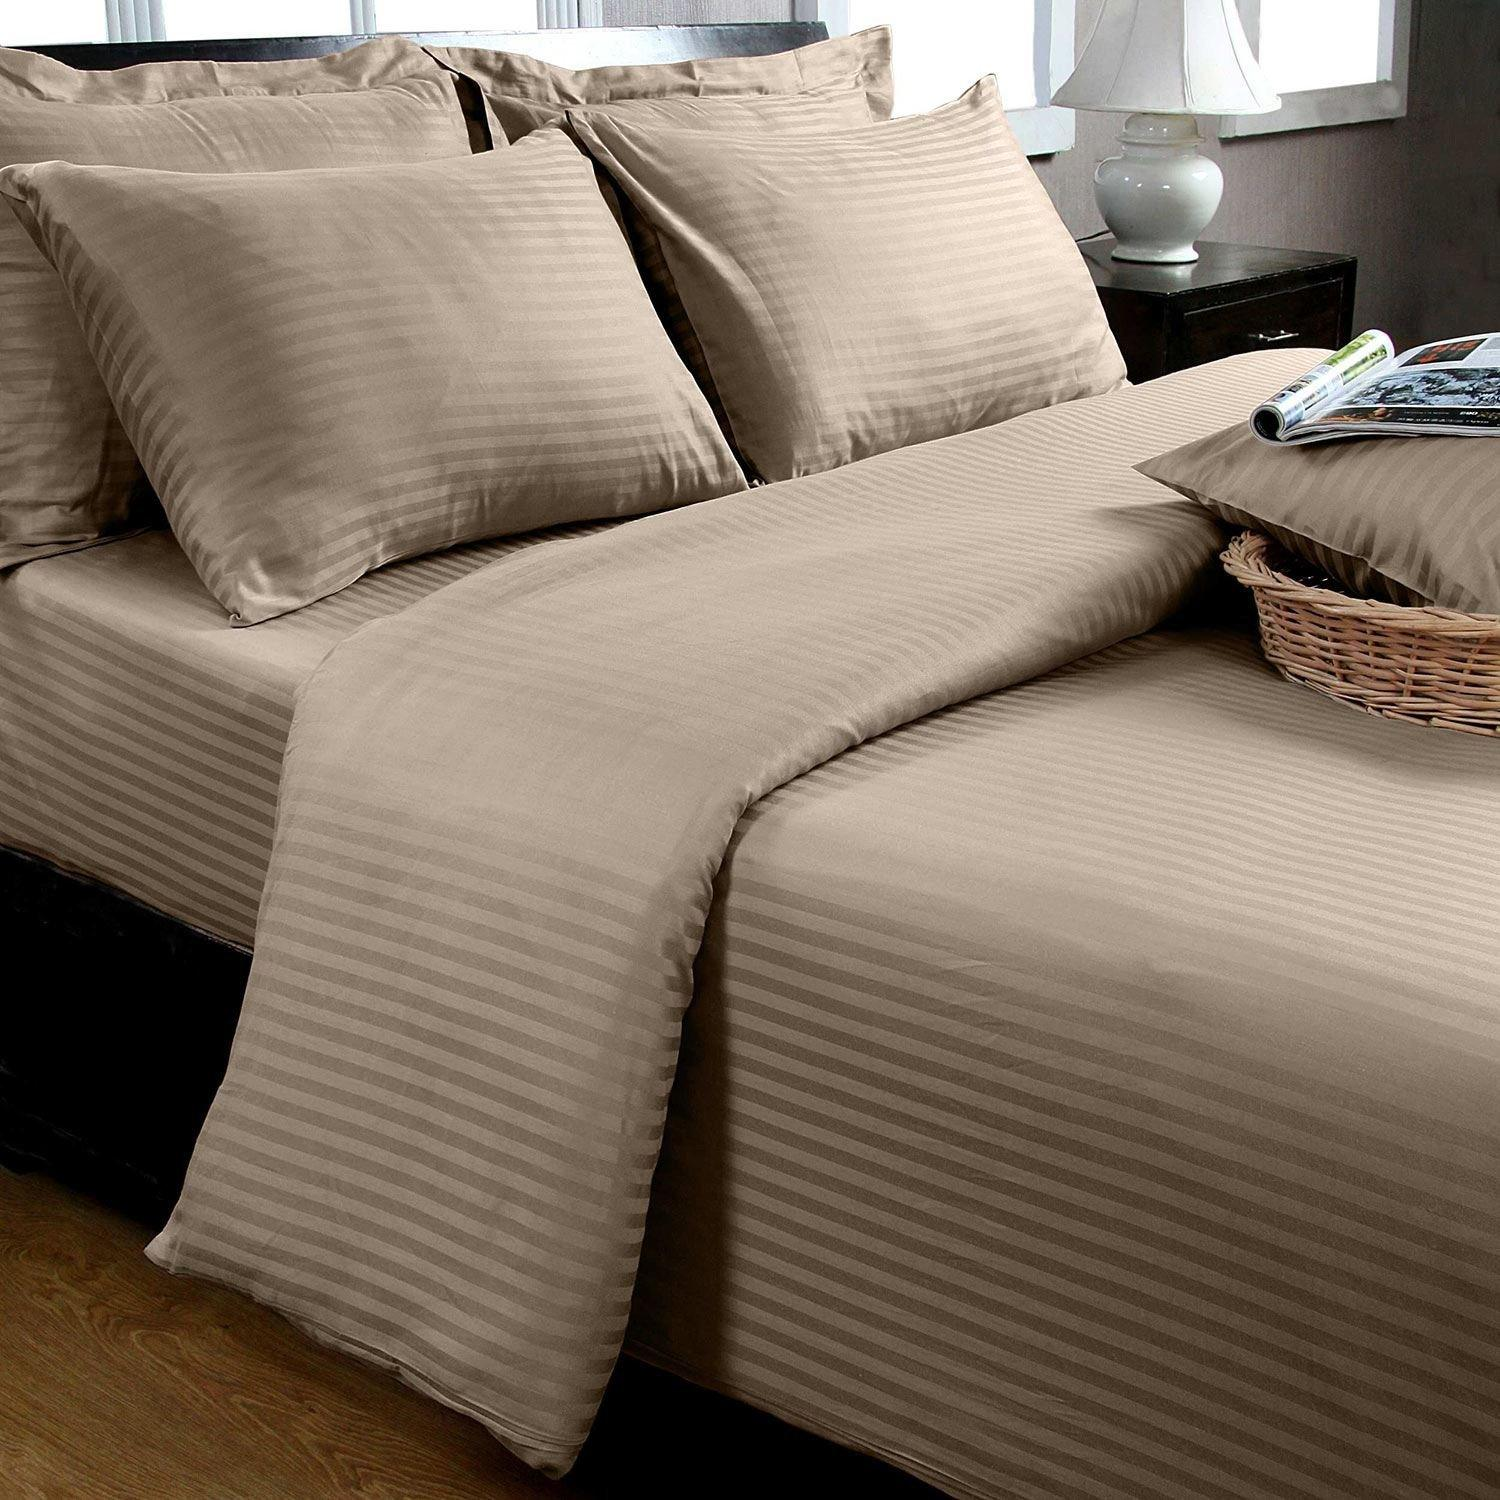 Homescapes Double Taupe Beige Egyptian Cotton Duvet Cover Set